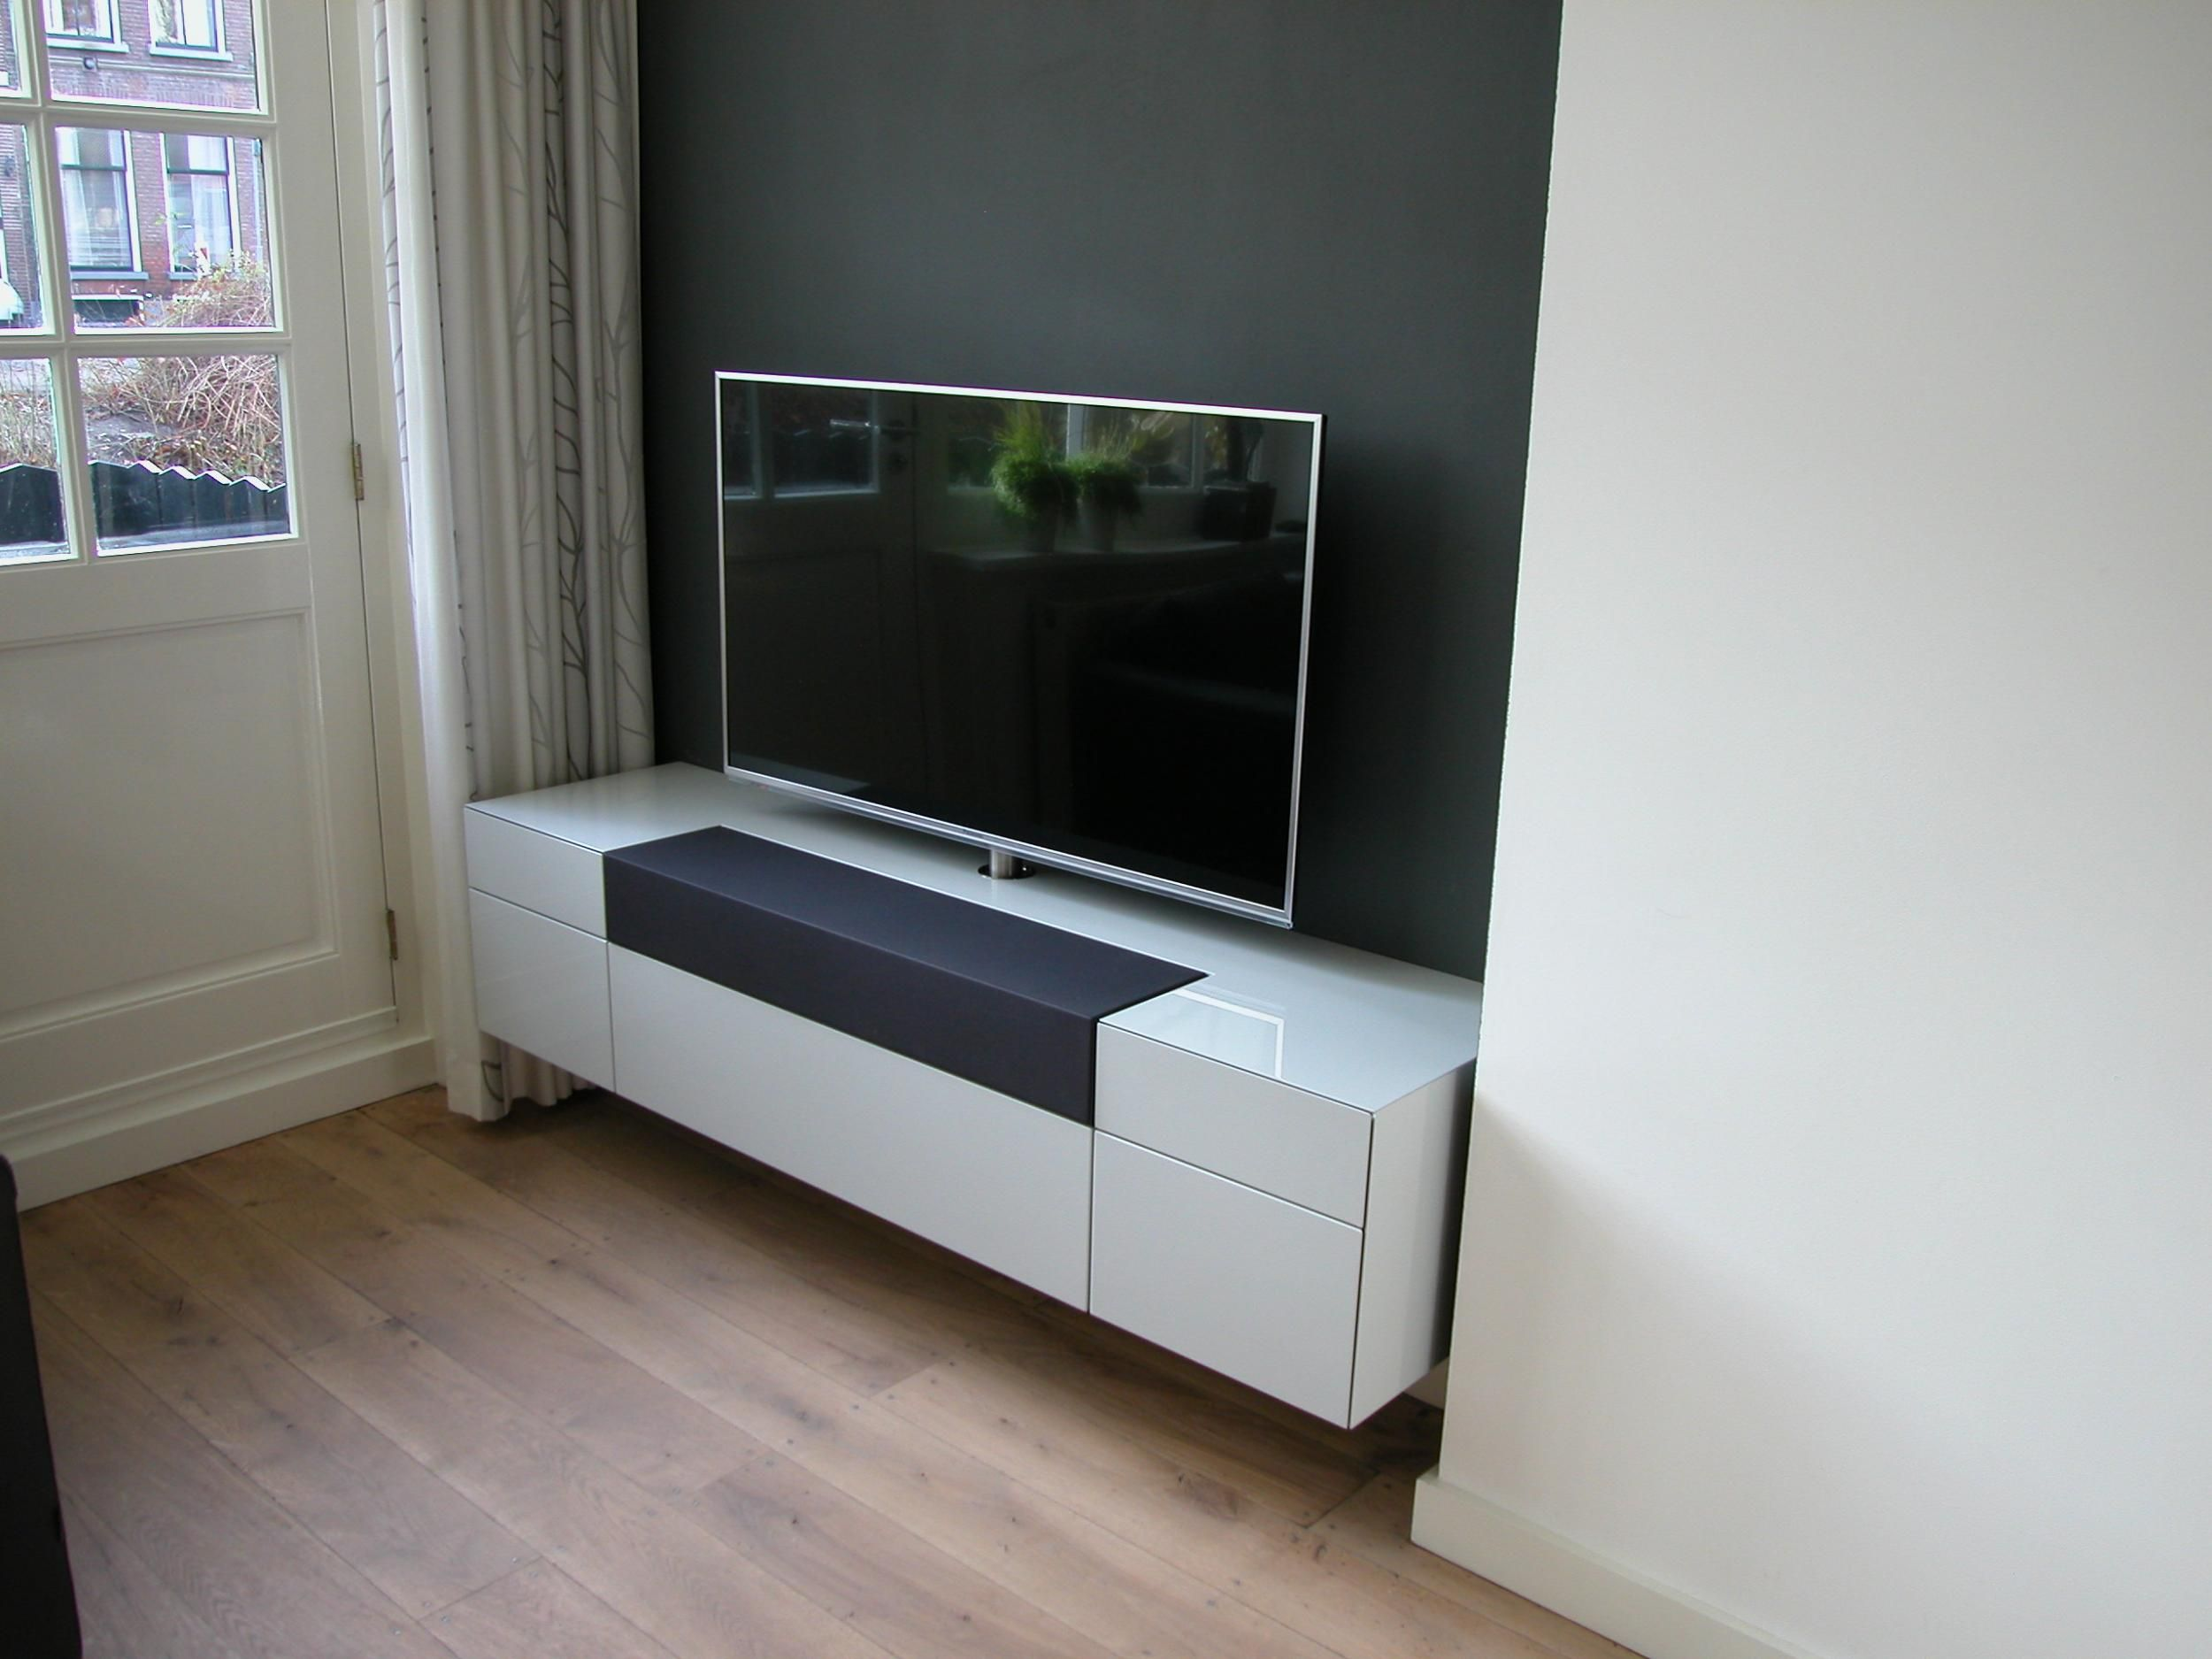 Artyx » The new design vision » Avs 180 sonos soundbar kast ...